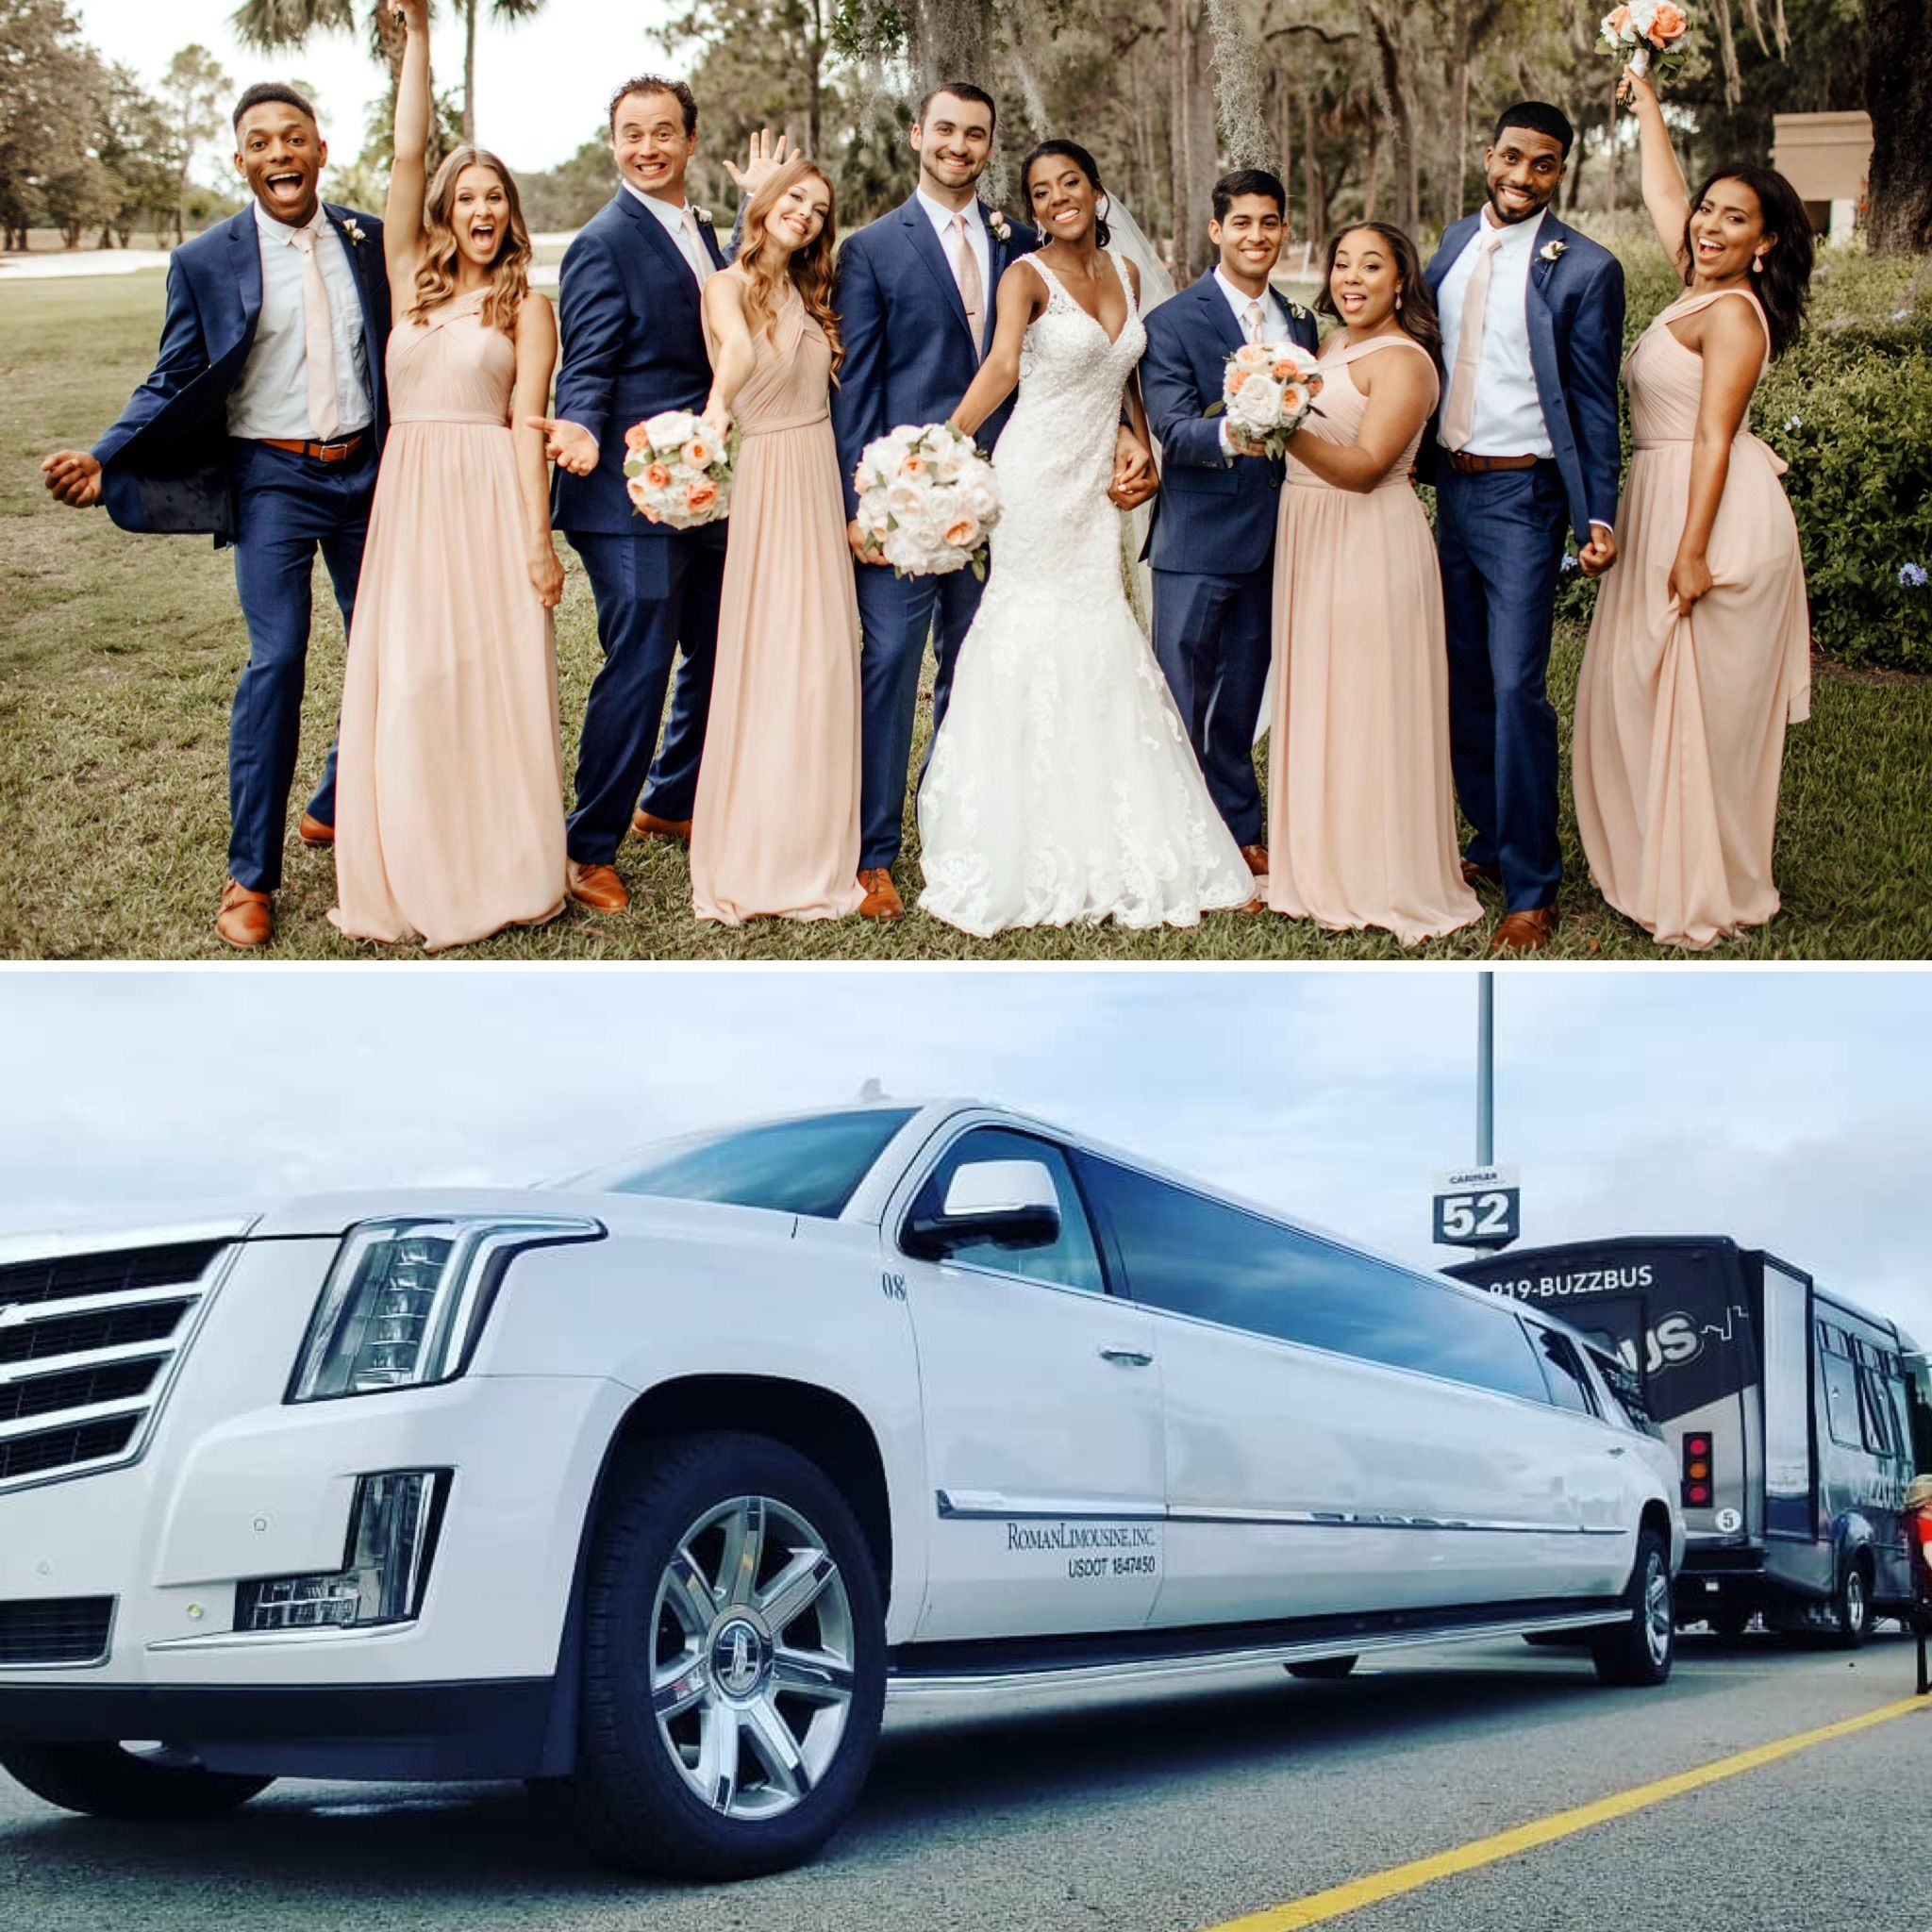 The Perfect Wedding Must Be A Dream Come True Choose The Best Wedding Vendors In The Industry And Leave No Room For Err Wedding Limo Limousine Wedding Boston